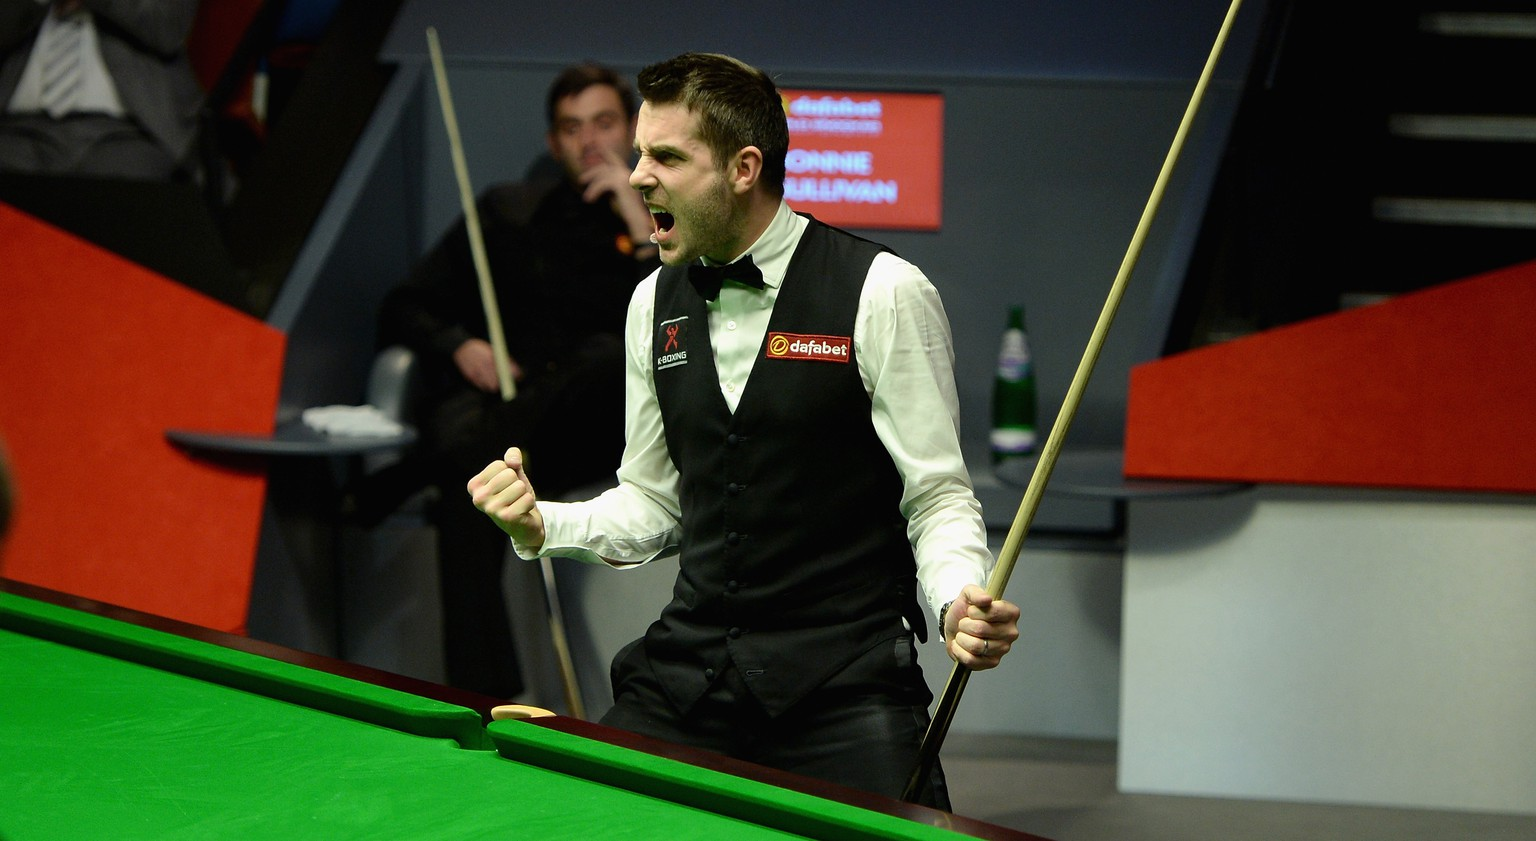 SHEFFIELD, ENGLAND - MAY 05:  Mark Selby celebrates potting the final black to win The Dafabet World Snooker Championship final at Crucible Theatre on May 5, 2014 in Sheffield, England.  (Photo by Gareth Copley/Getty Images)